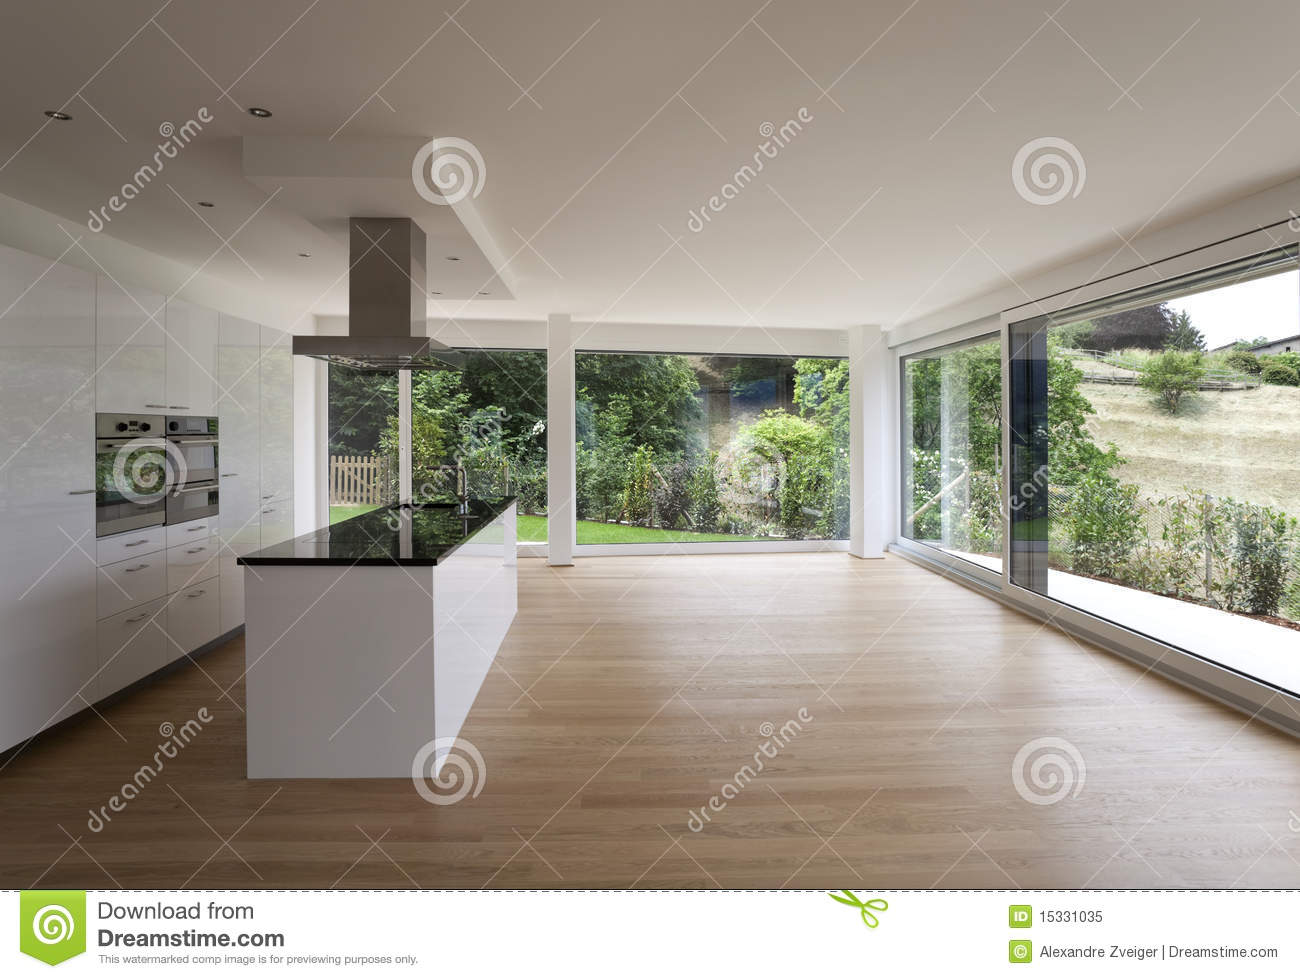 Bel int rieur d 39 une maison moderne photo libre de droits for Interieur de maison contemporaine